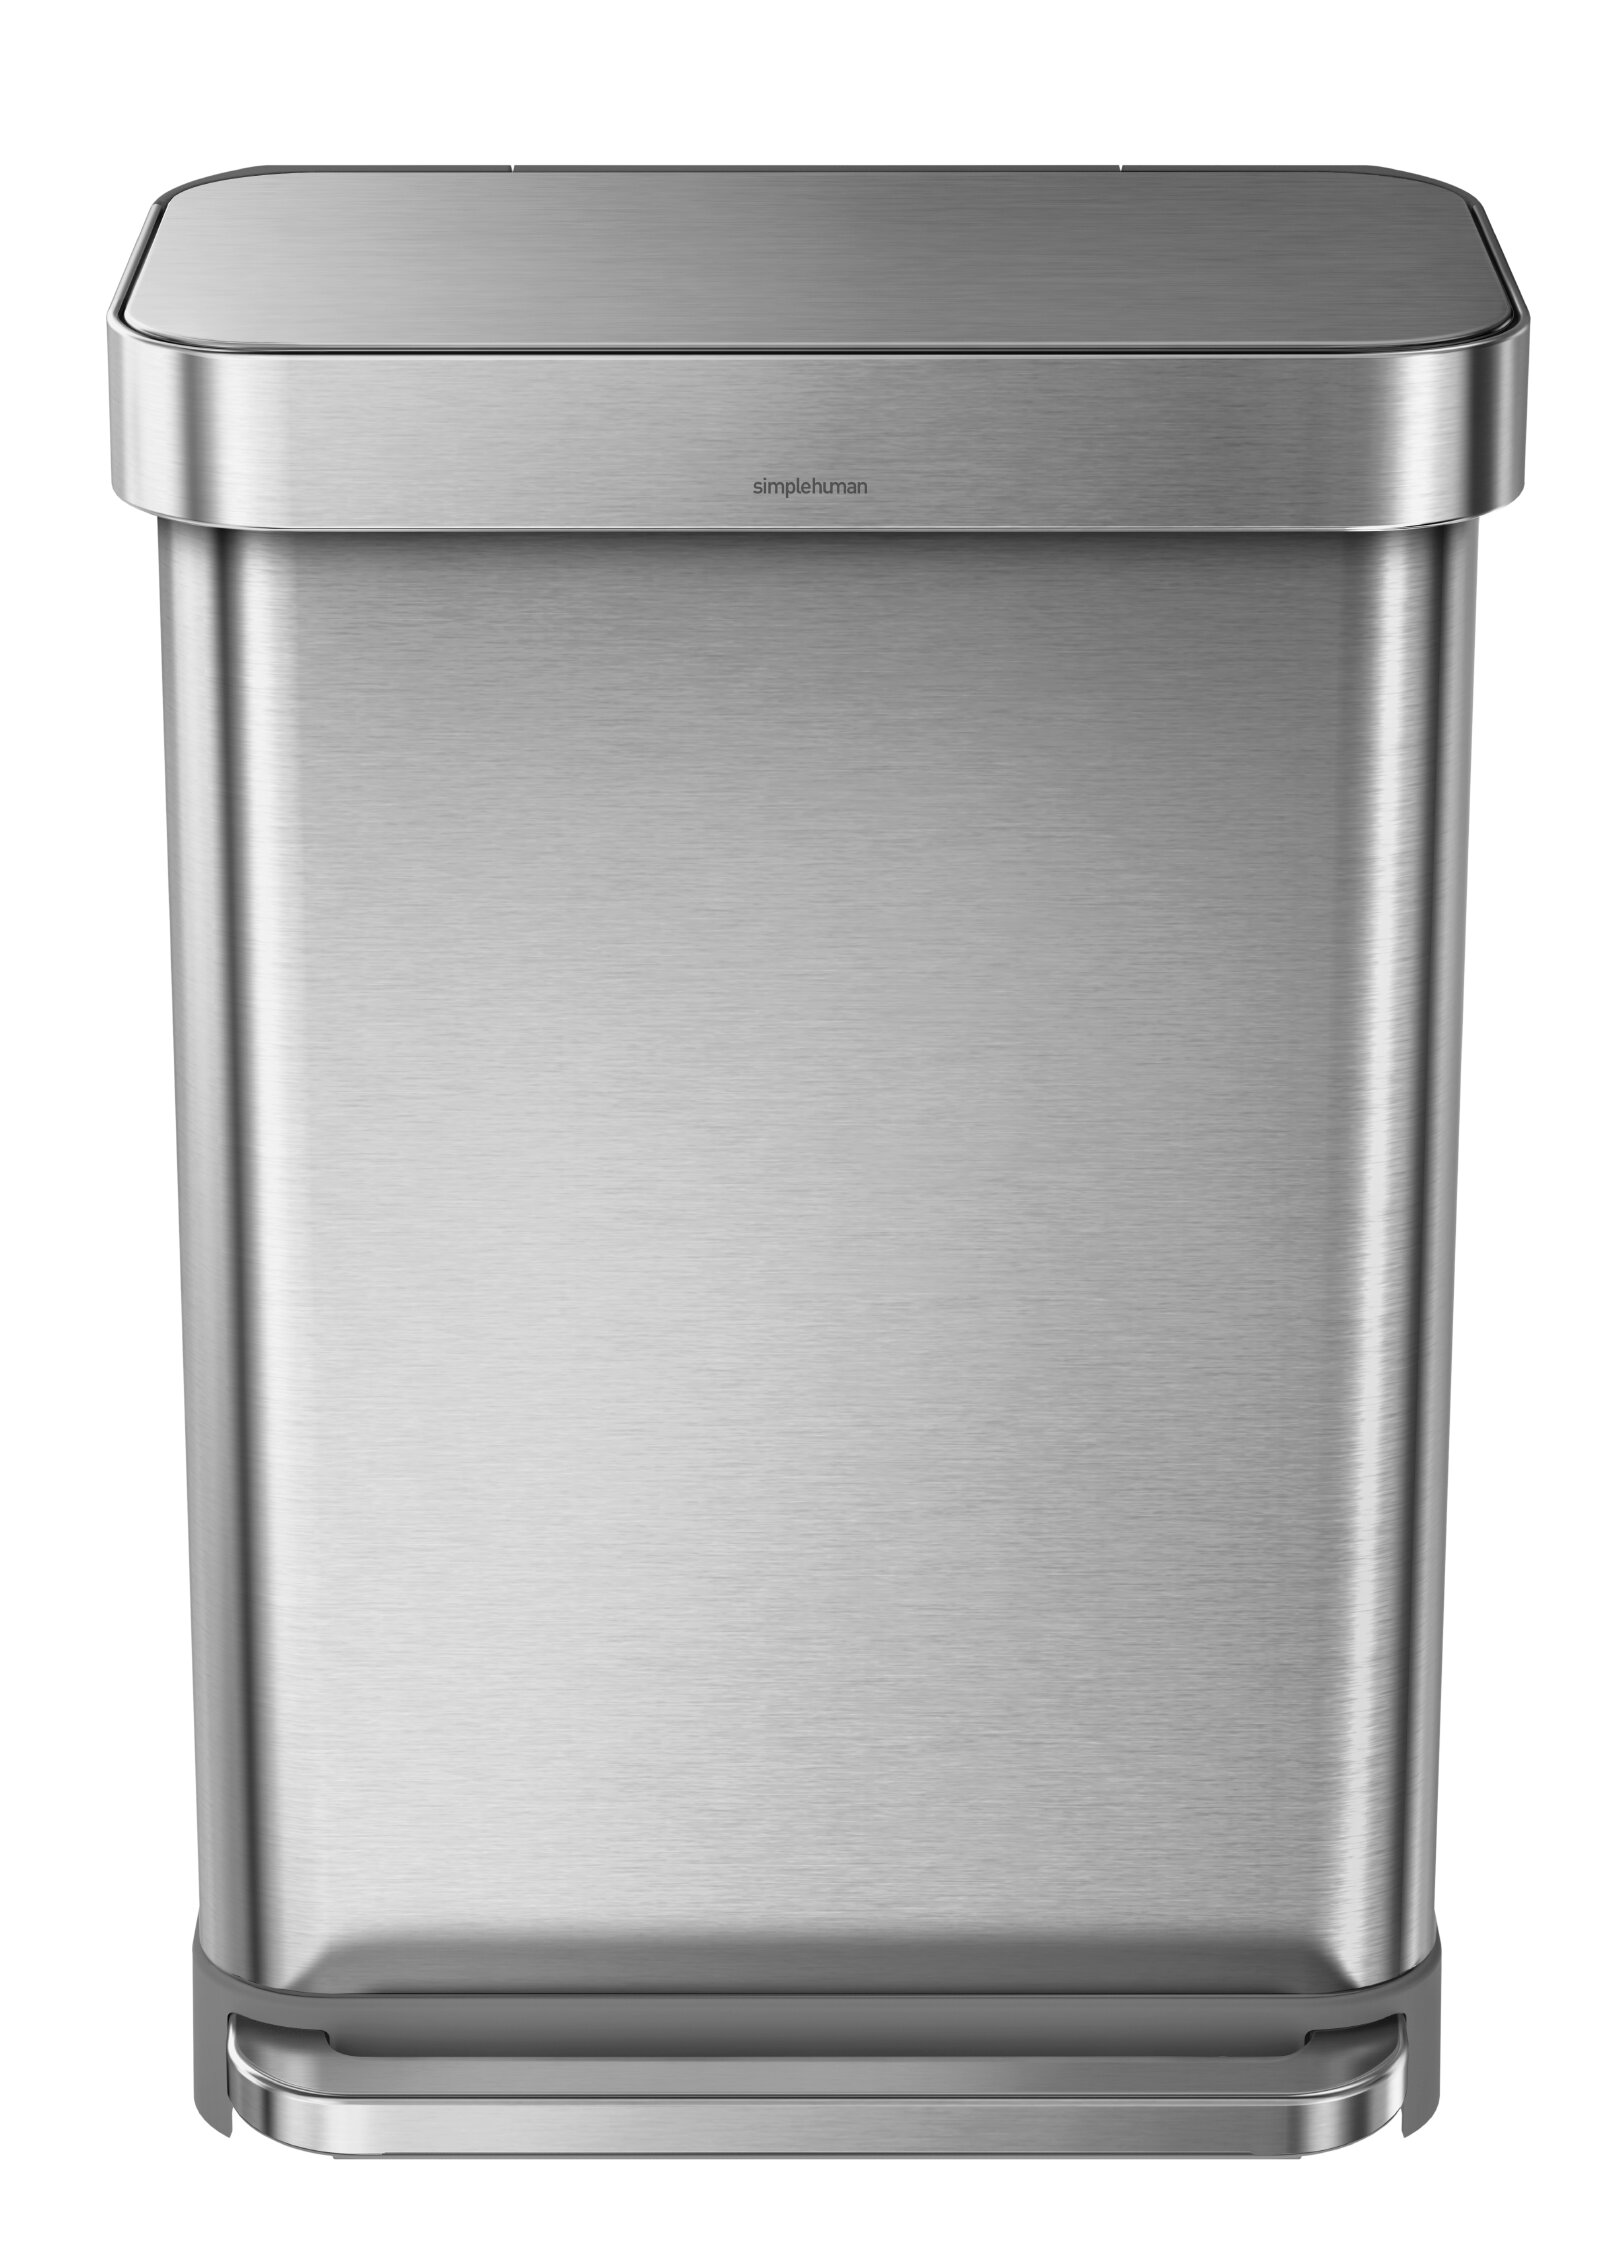 simplehuman 14.5 Gallon Rectangular Step Trash Can with Liner Pocket ...